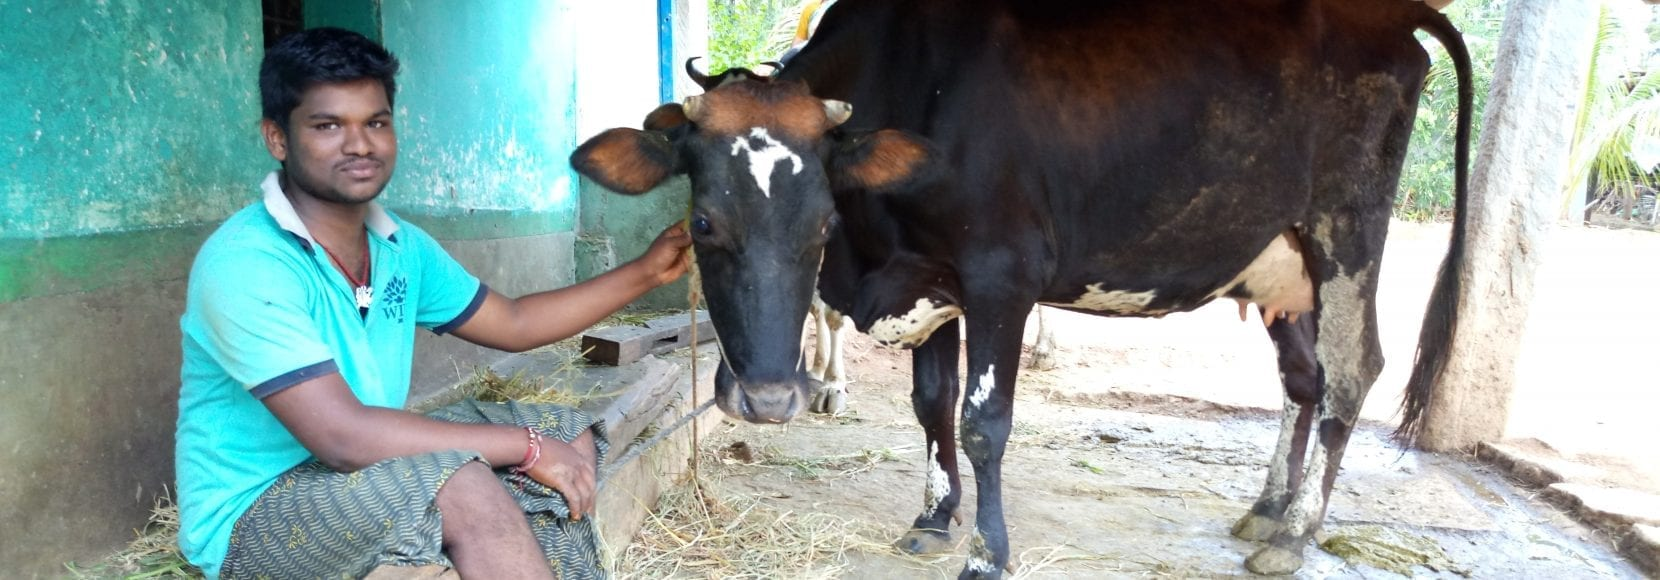 Suresha from the Cargill Agri-Fellows program in India with his newly purchased cow